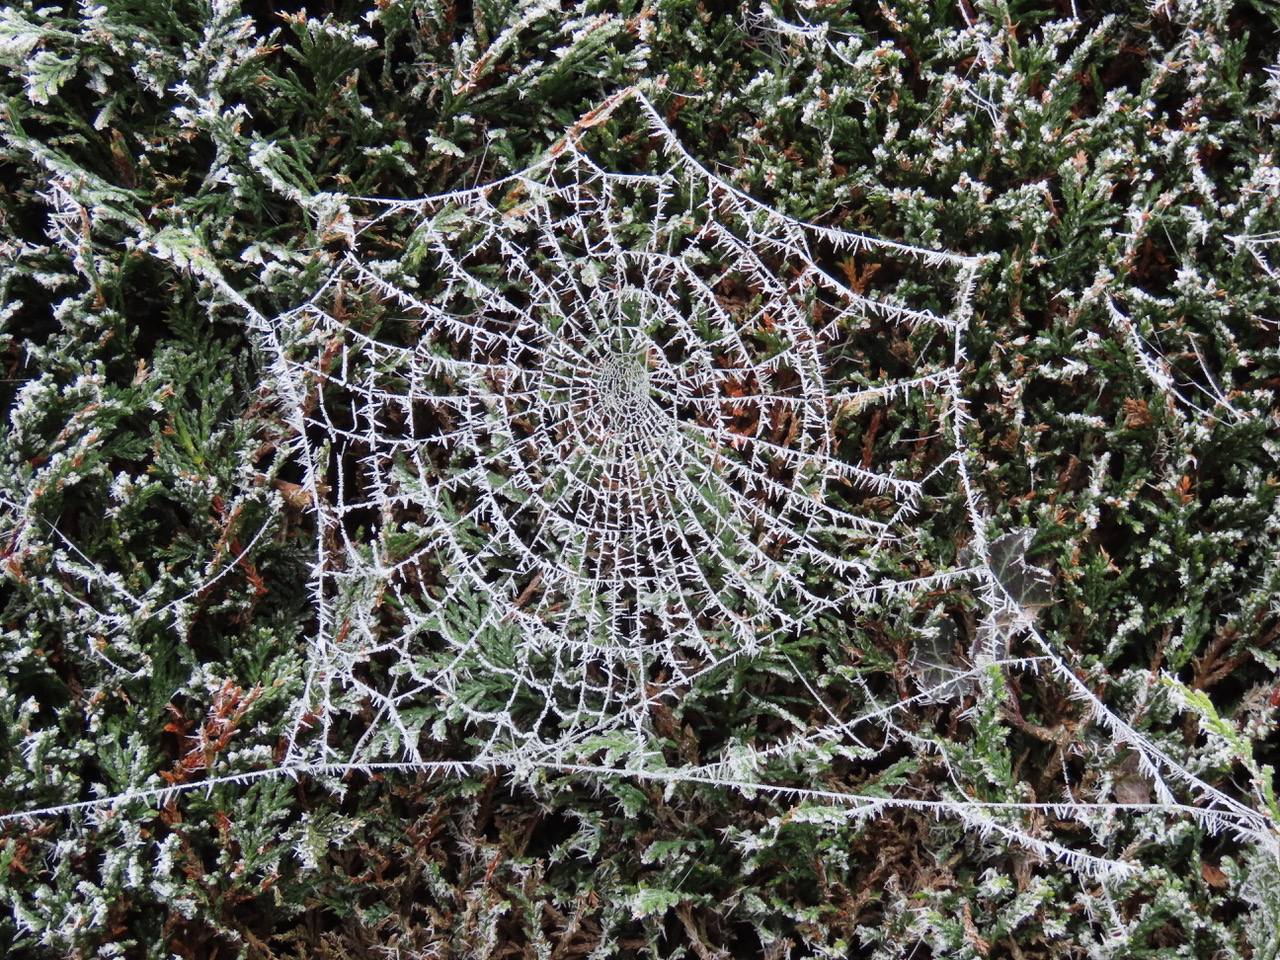 Spider's web © Rosemary Winnall